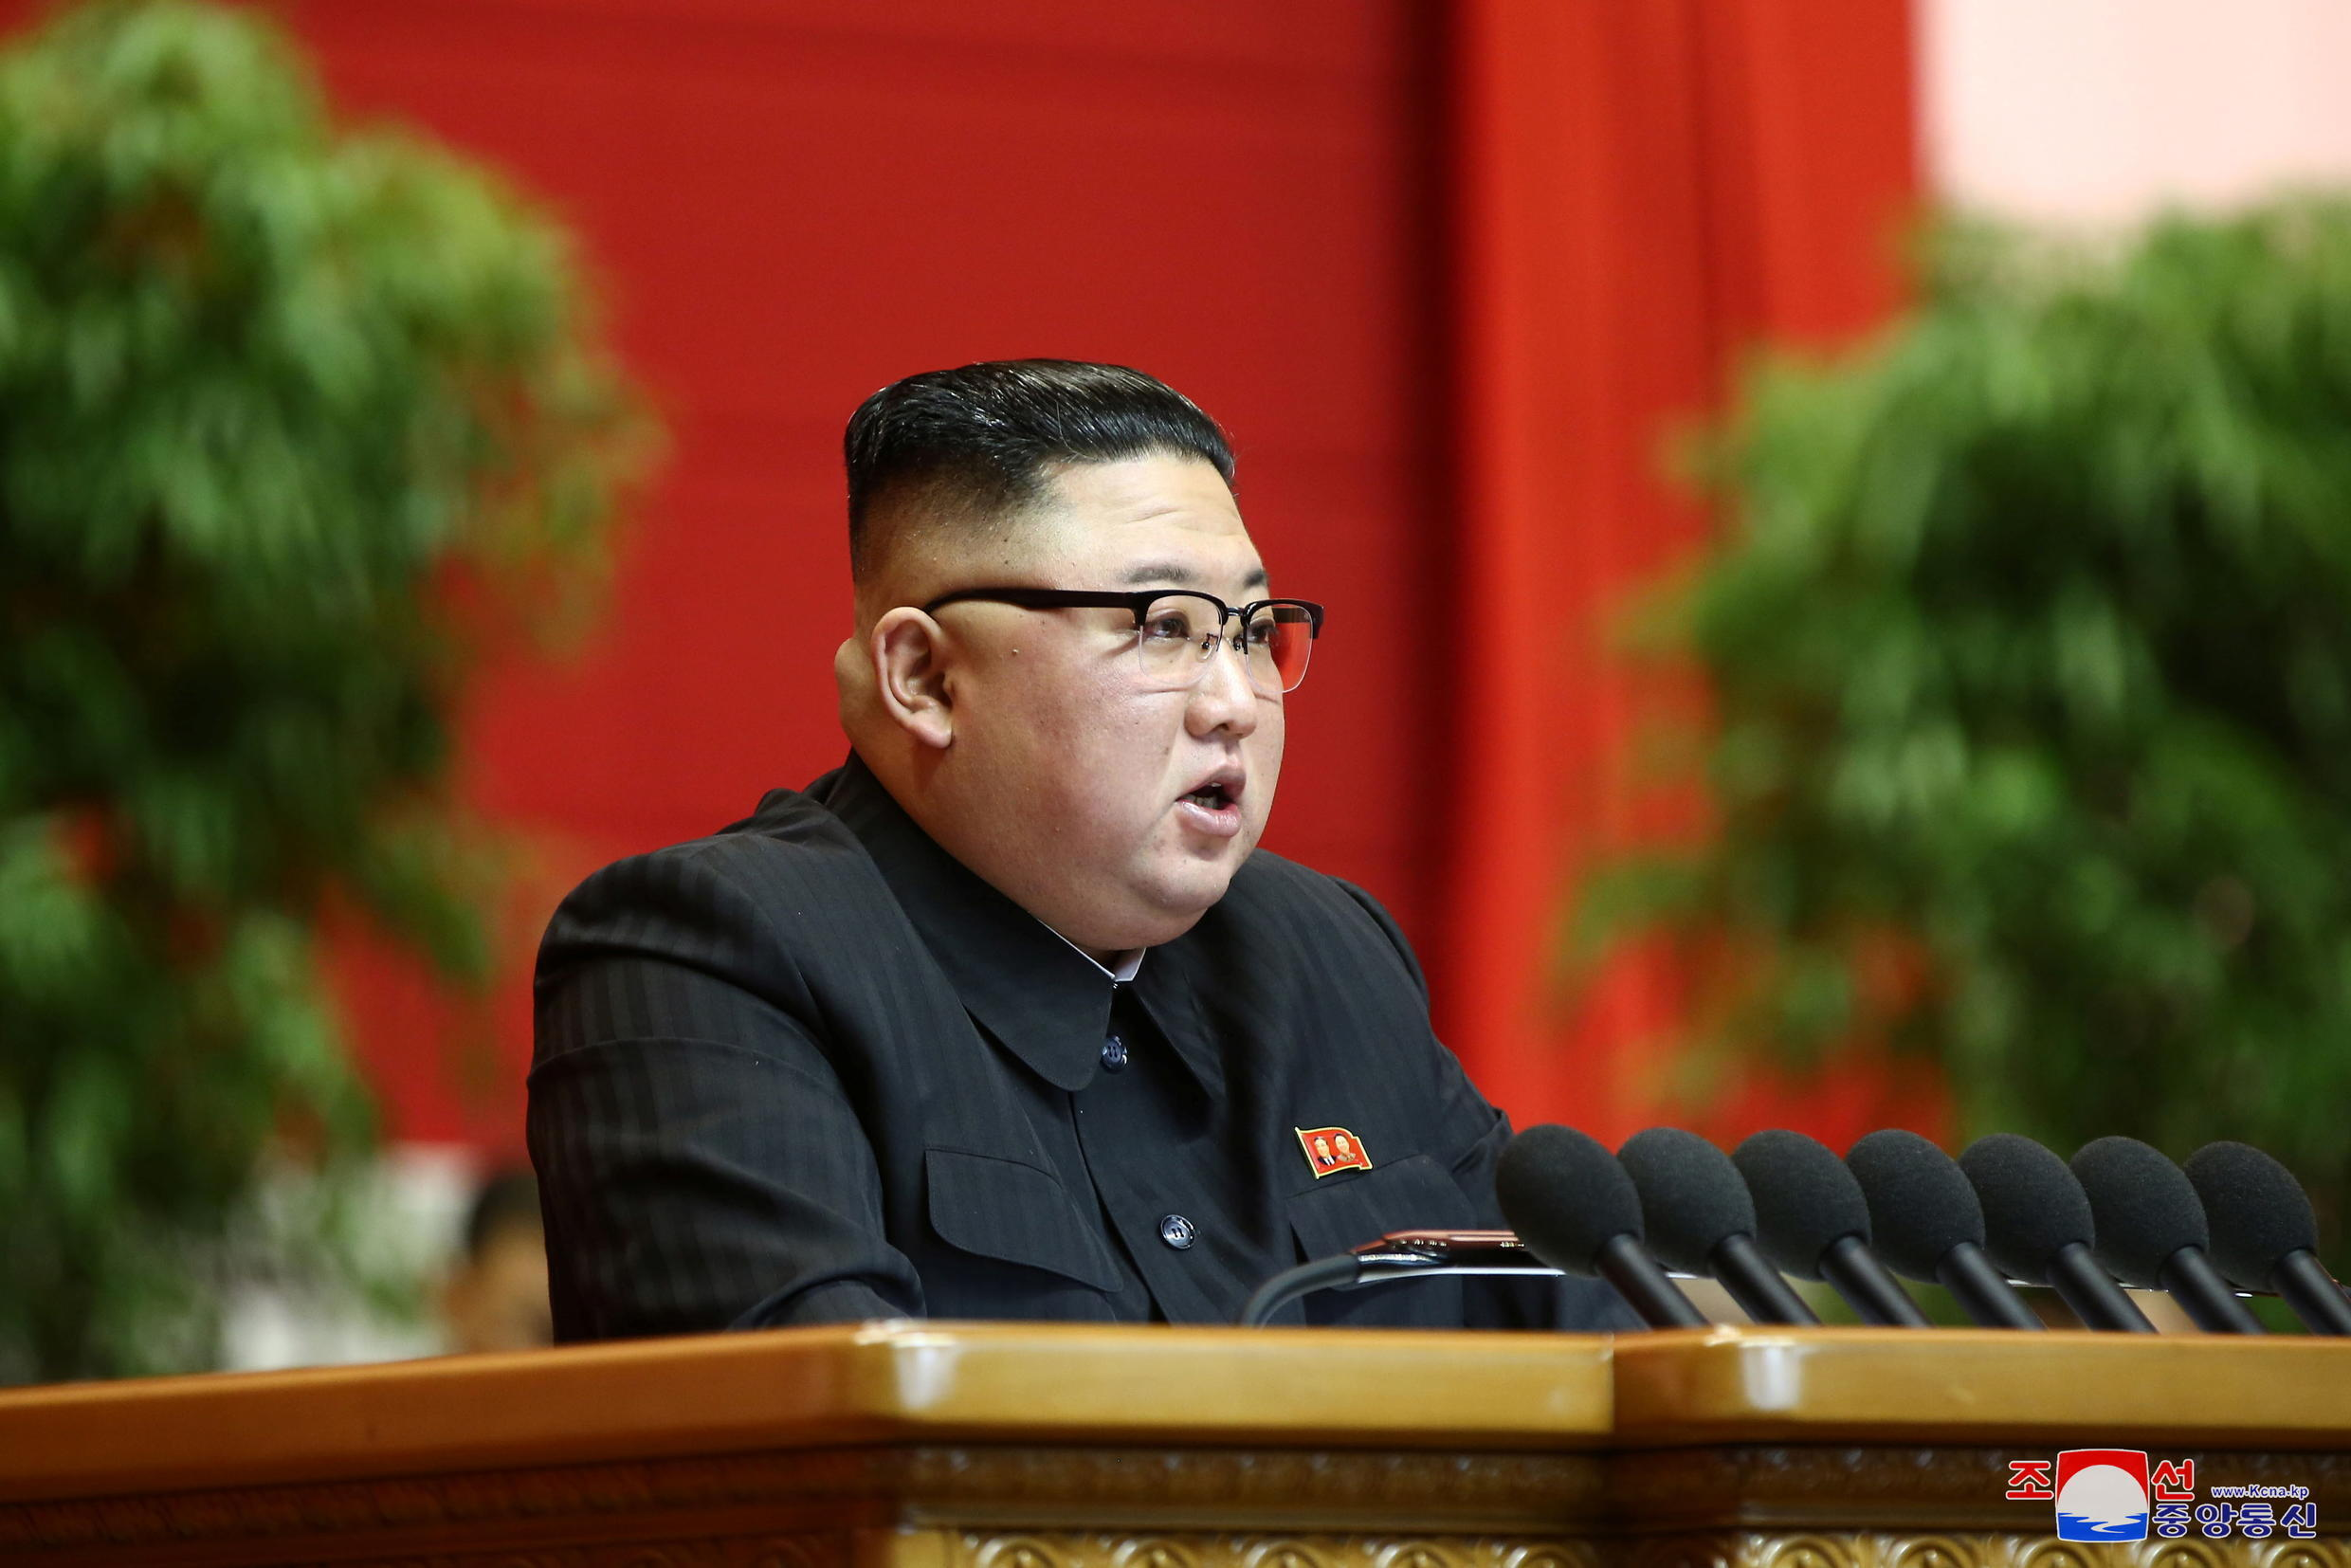 North Korean leader Kim Jong Un speaks during the 8th Congress of the Workers' Party in Pyongyang, North Korea, in this photo supplied by North Korea's Central News Agency (KCNA) on January 13, 2021.